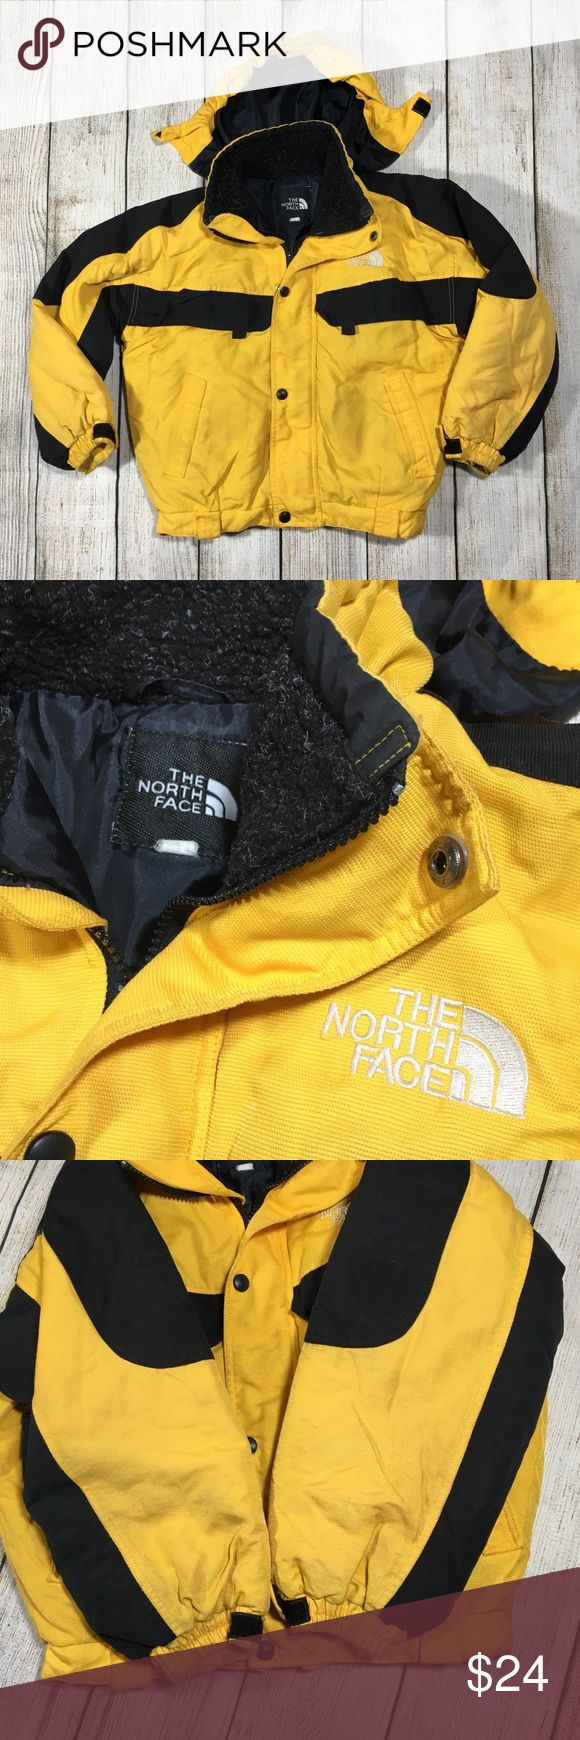 "Vtg North Face Kids Hooded Jacket Coat Small 7 8 Vintage  THE NORTH FACE  Kids JACKET COAT  BOYS SMALL 7 8 Colors: Black and Yellow  Hooded Shows wear with minor discoloration on front near pockets and on sleeve ends. Measurements taken laying flat: Chest: 19.5"" Sleeve length from collar: 21.5"" Sleeve length from armpit: 14.5"" Overall length: 19.25"" Bottom width: 14.5"" The North Face Jackets & Coats"